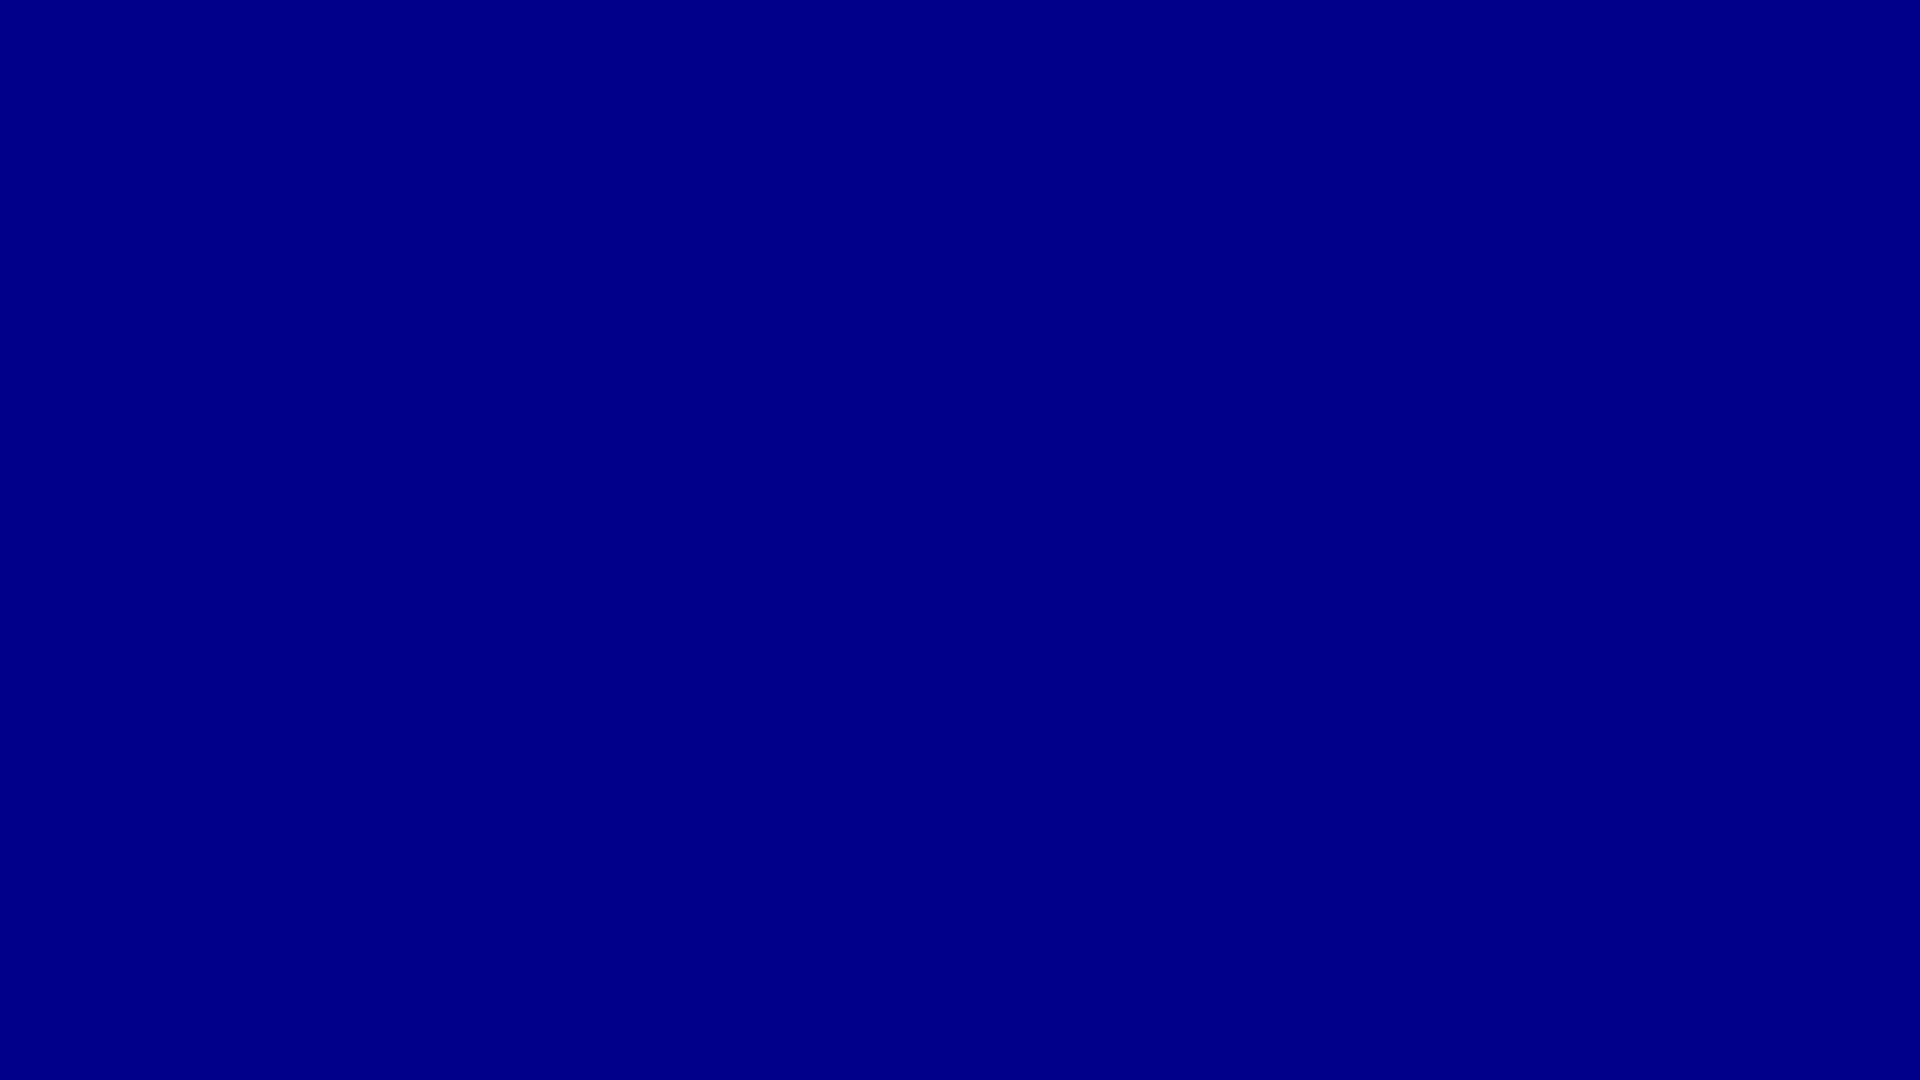 1920x1080 Dark Blue Solid Color Background 1920x1080